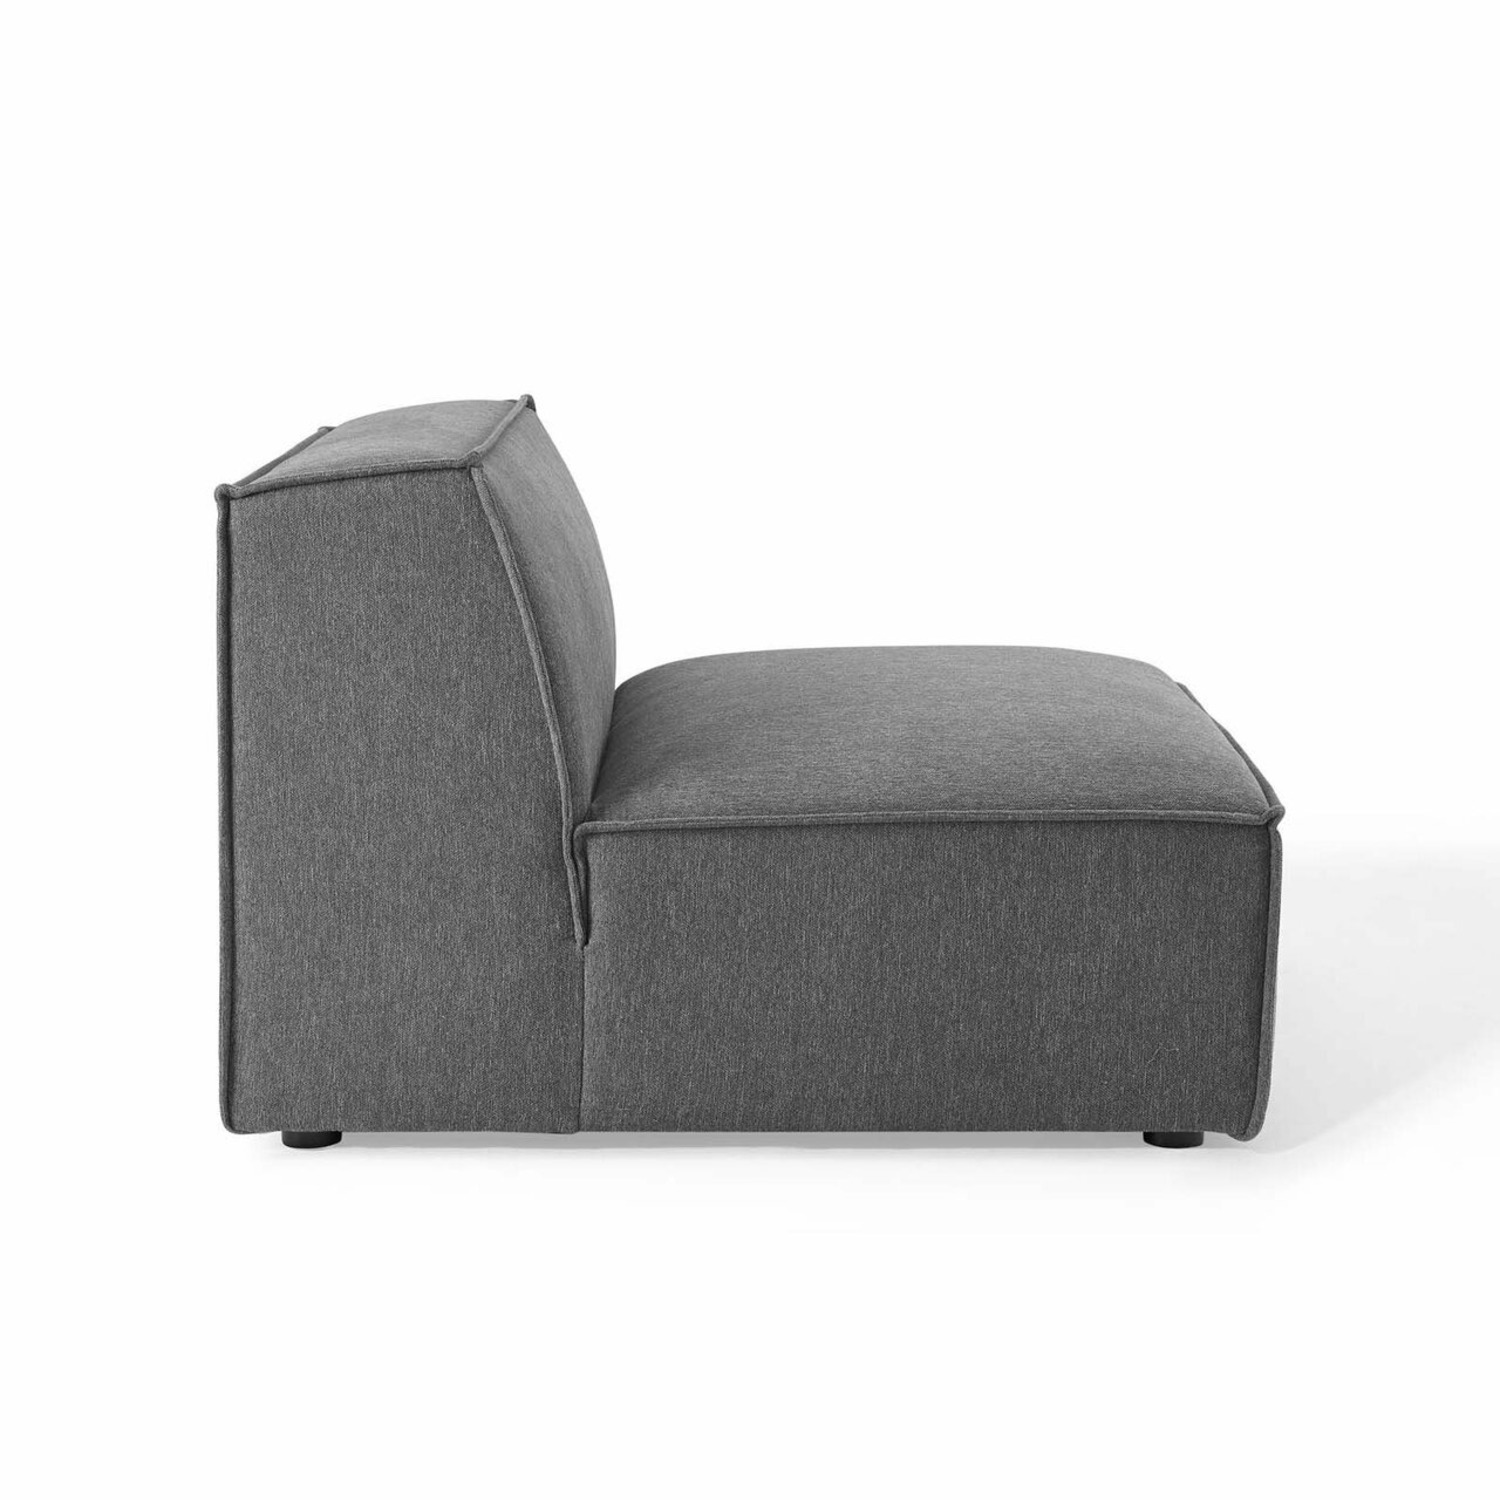 4-Piece Sectional Sofa In Charcoal Fabric Finish - image-7